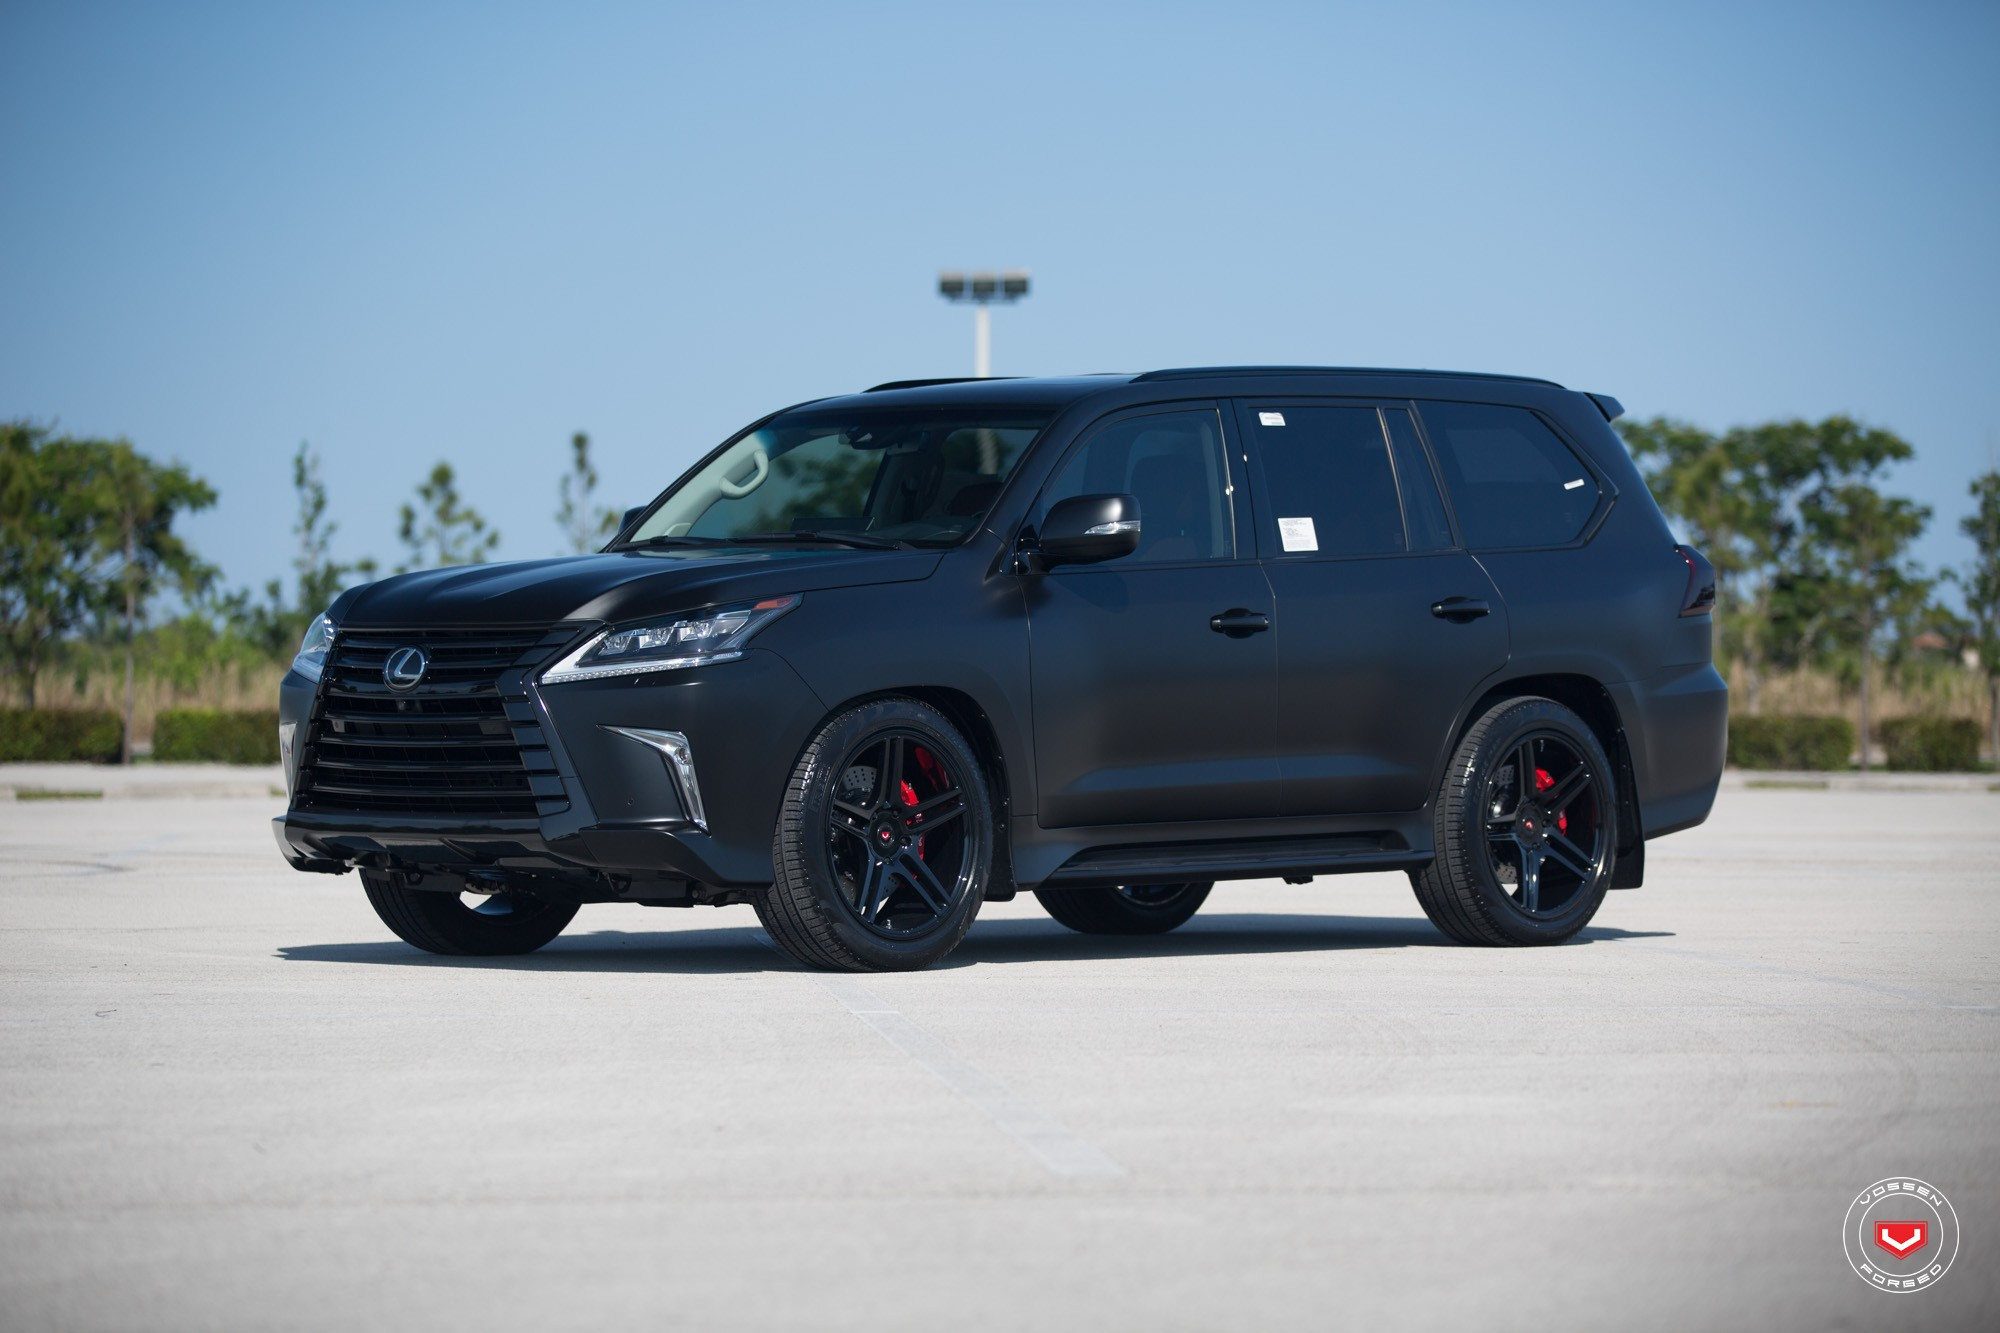 Murdered Out Cars For Sale >> Lexus LX 570 Gets Murdered Out Look and Vossen Wheels - autoevolution